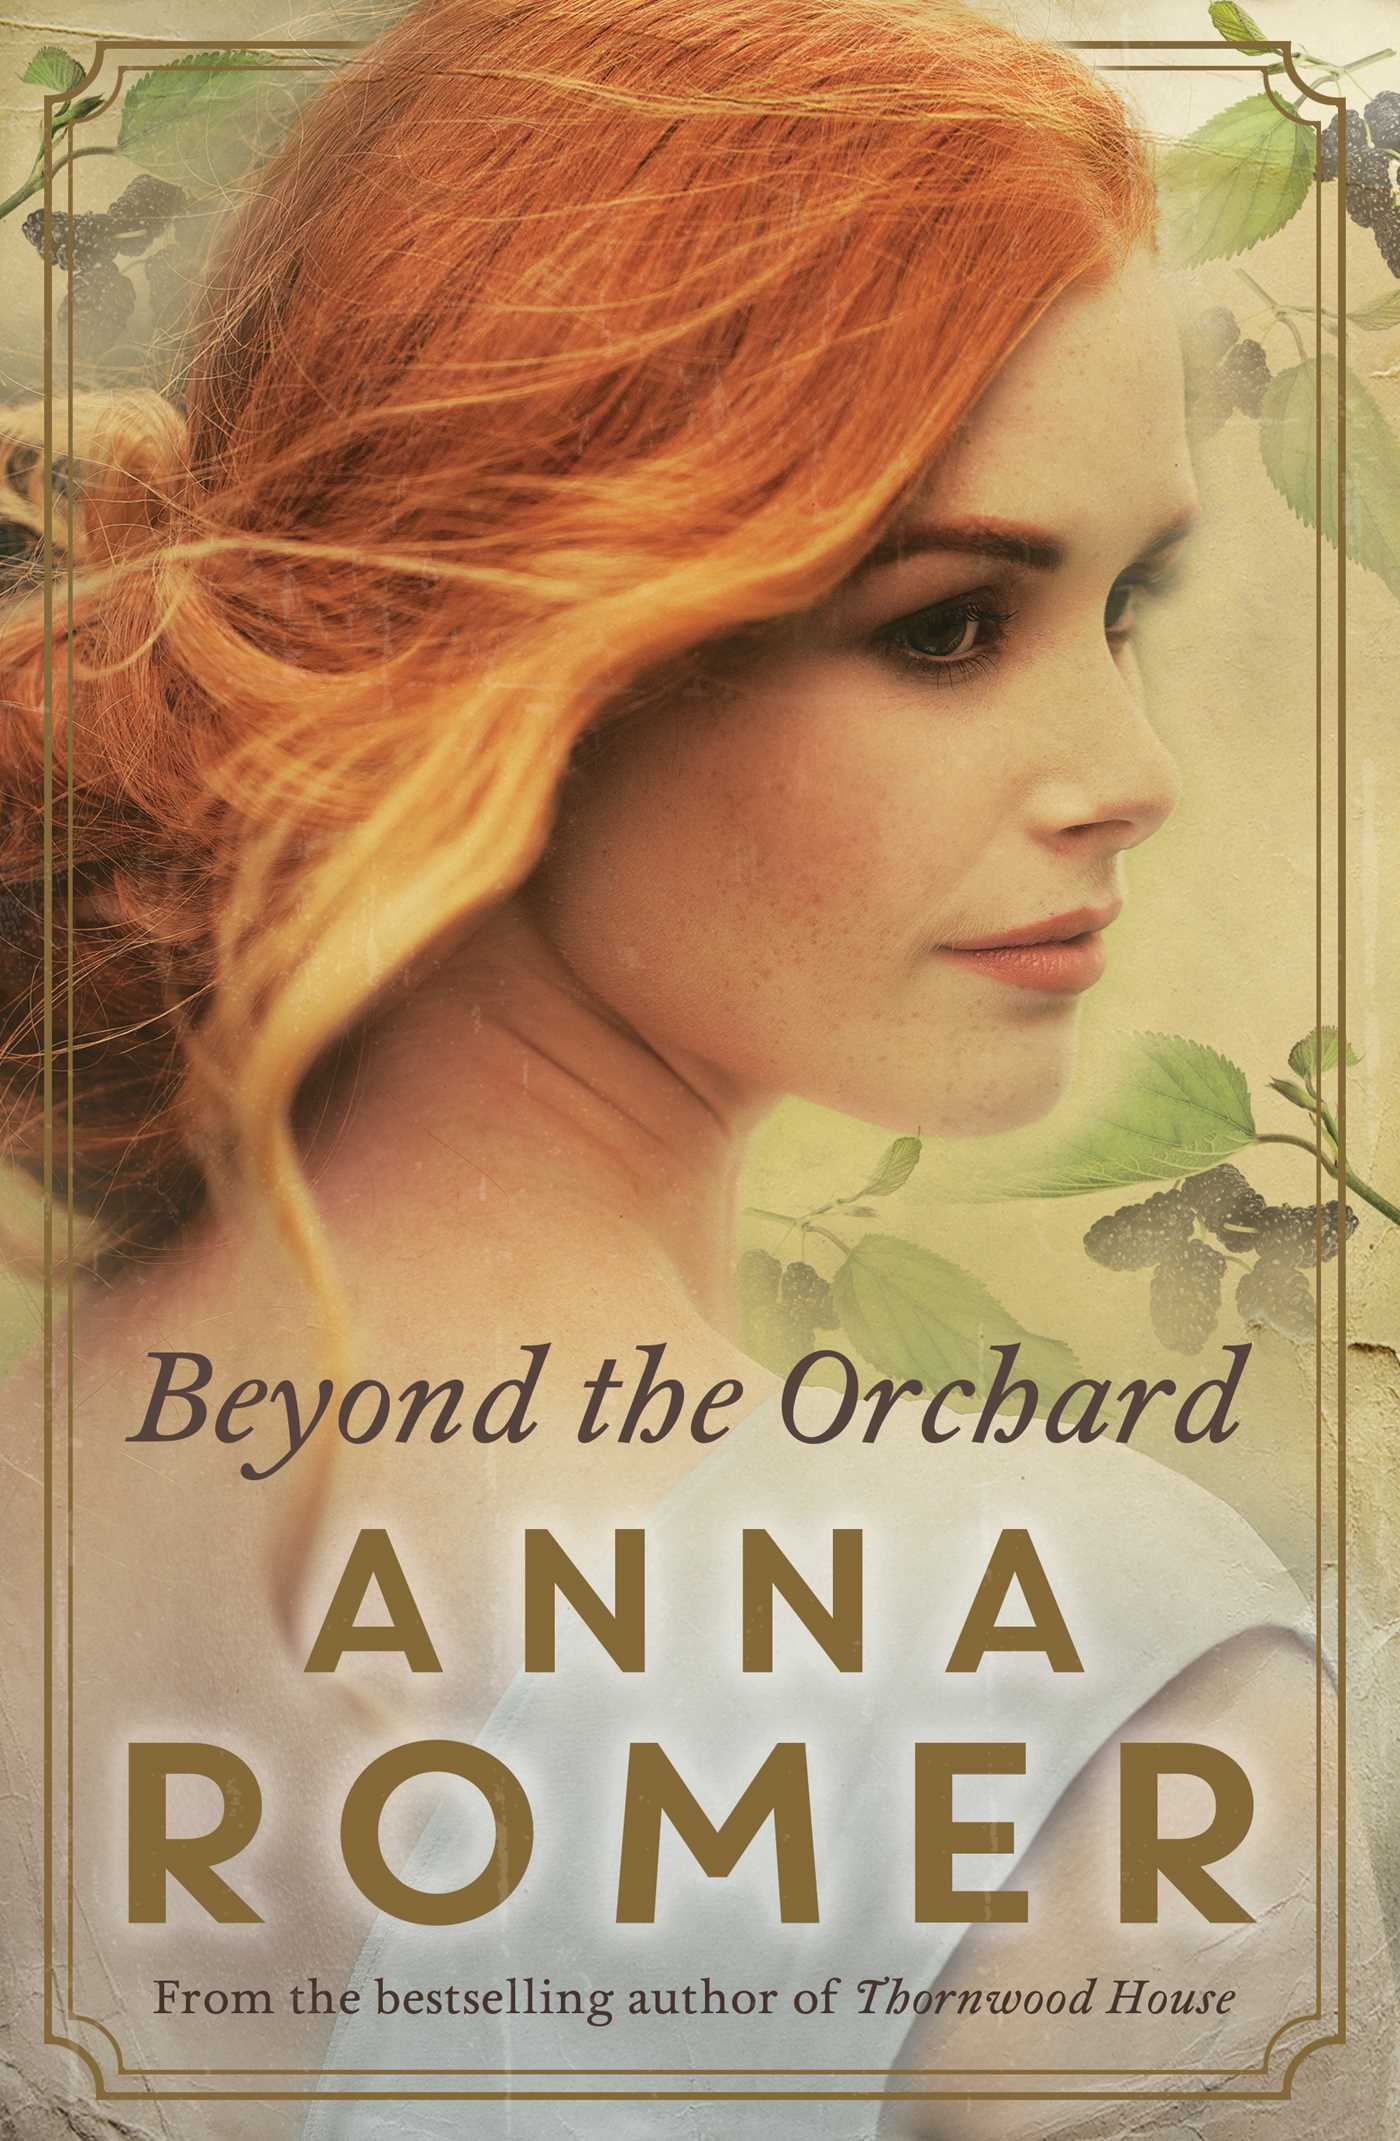 Image result for Beyond the Orchard